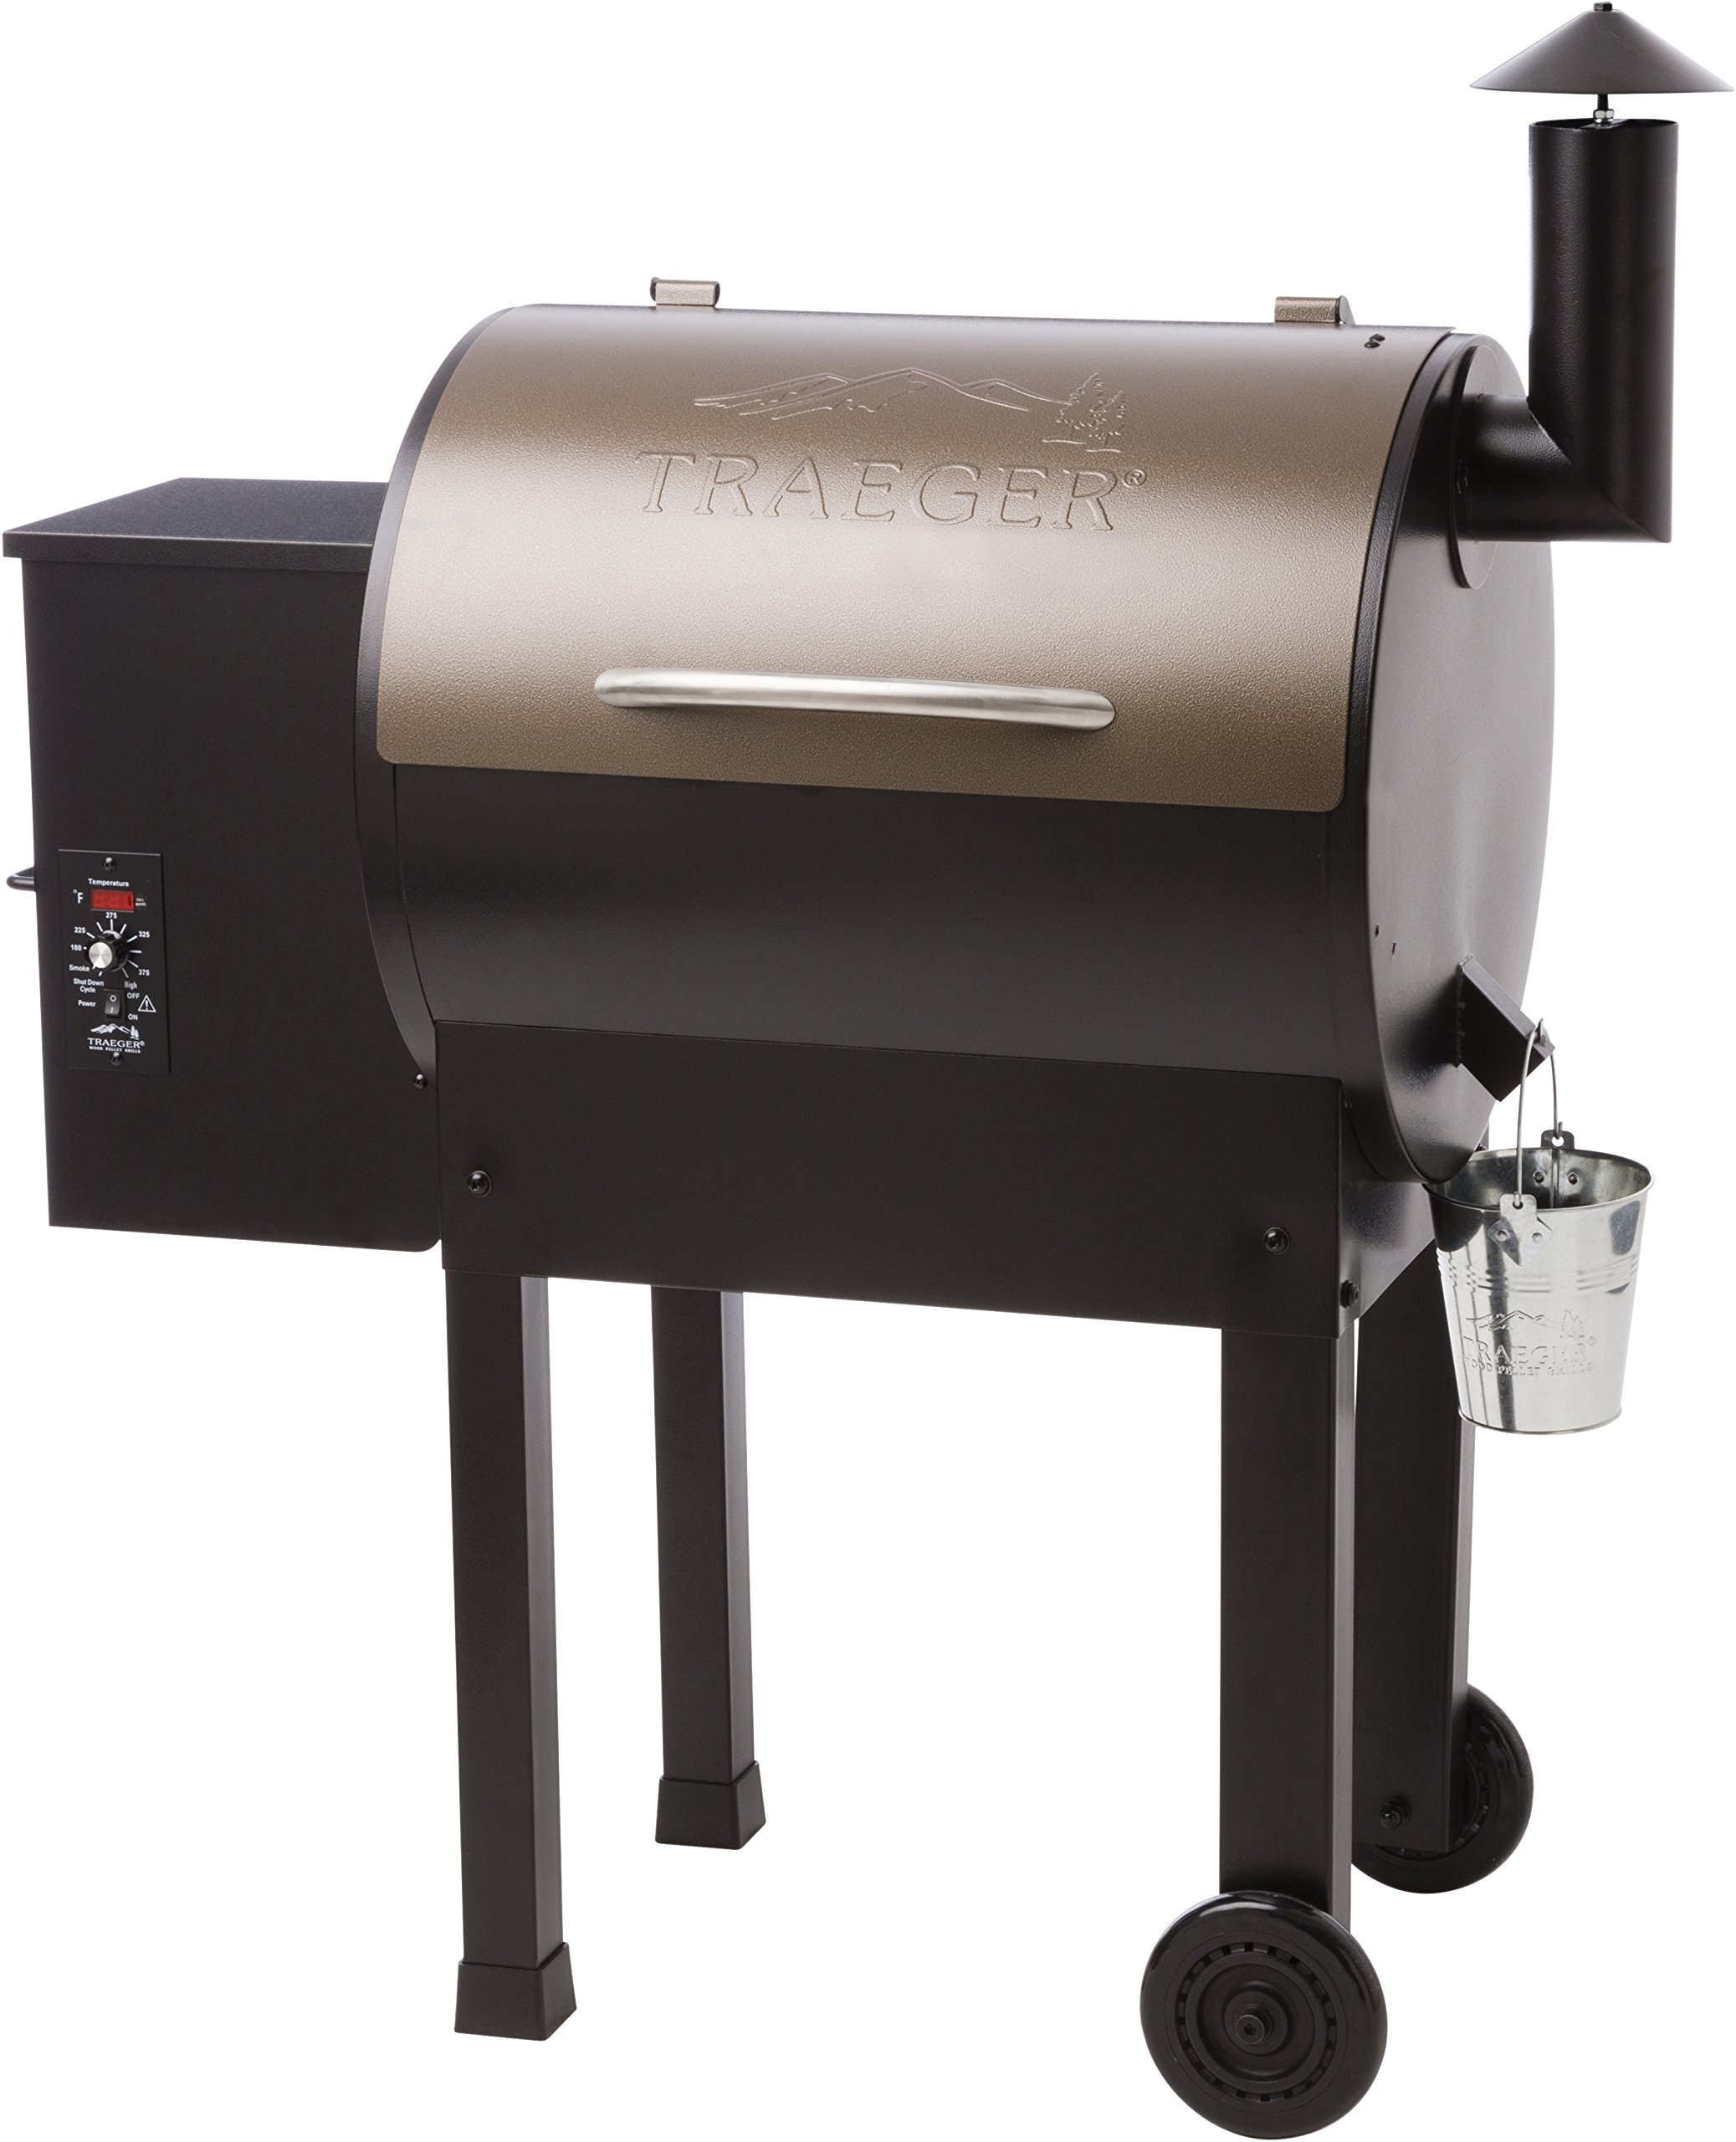 Traeger TFB42LZB Lil Tex Elite 22 Grill and Smoker 418 Sq. in. Cooking Capacity